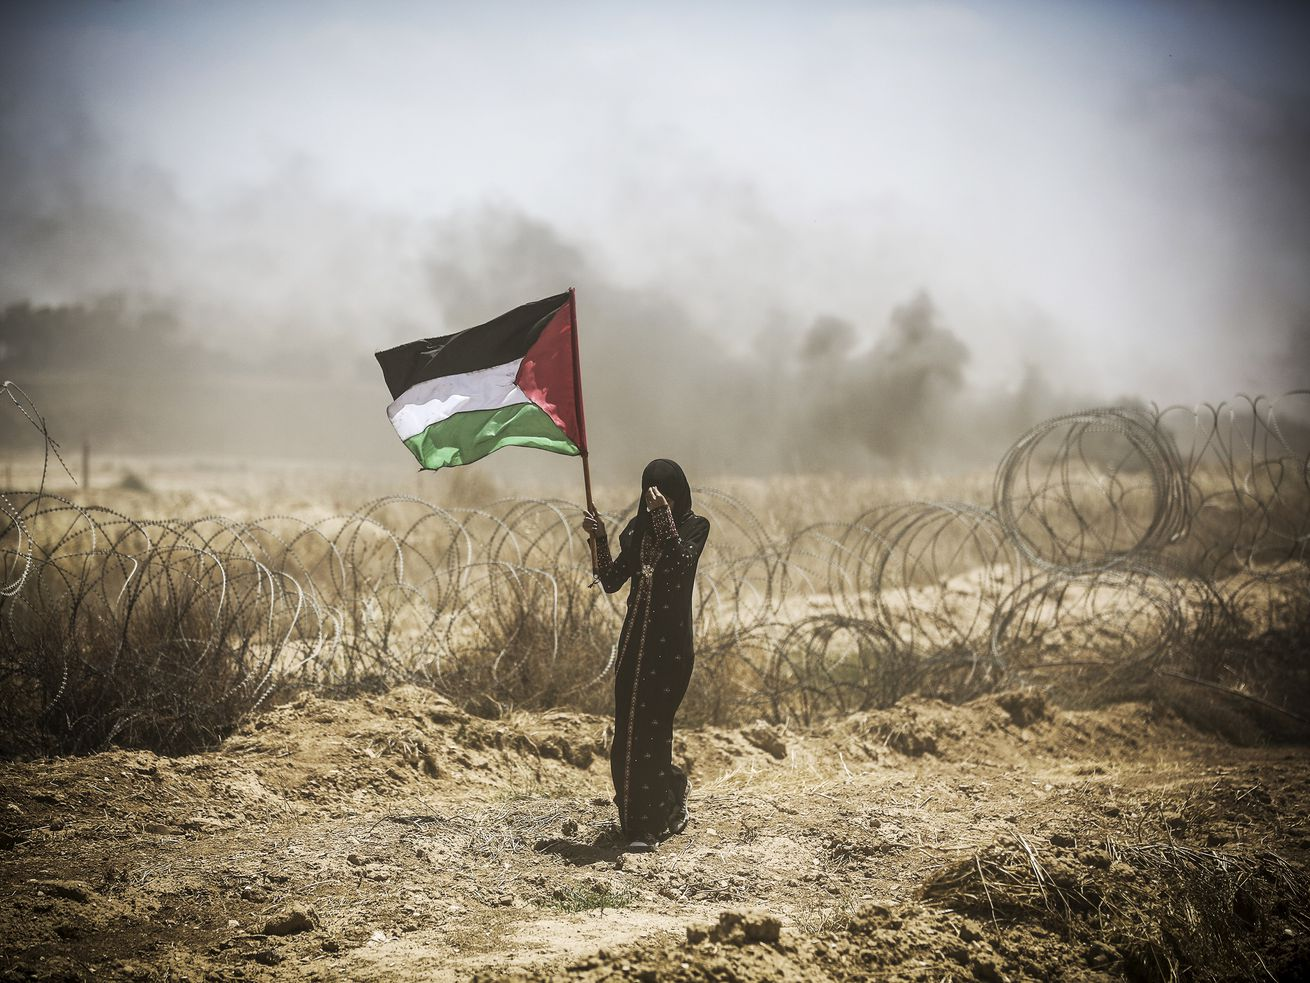 Palestinians take part in a protest organized to mark the 70th anniversary of the Nakba, also known as the Day of the Catastrophe, in 1948, and against the US decision to relocate their embassy from Tel Aviv to Jerusalem, on May 14, 2018. (Gaza City, Gaza)